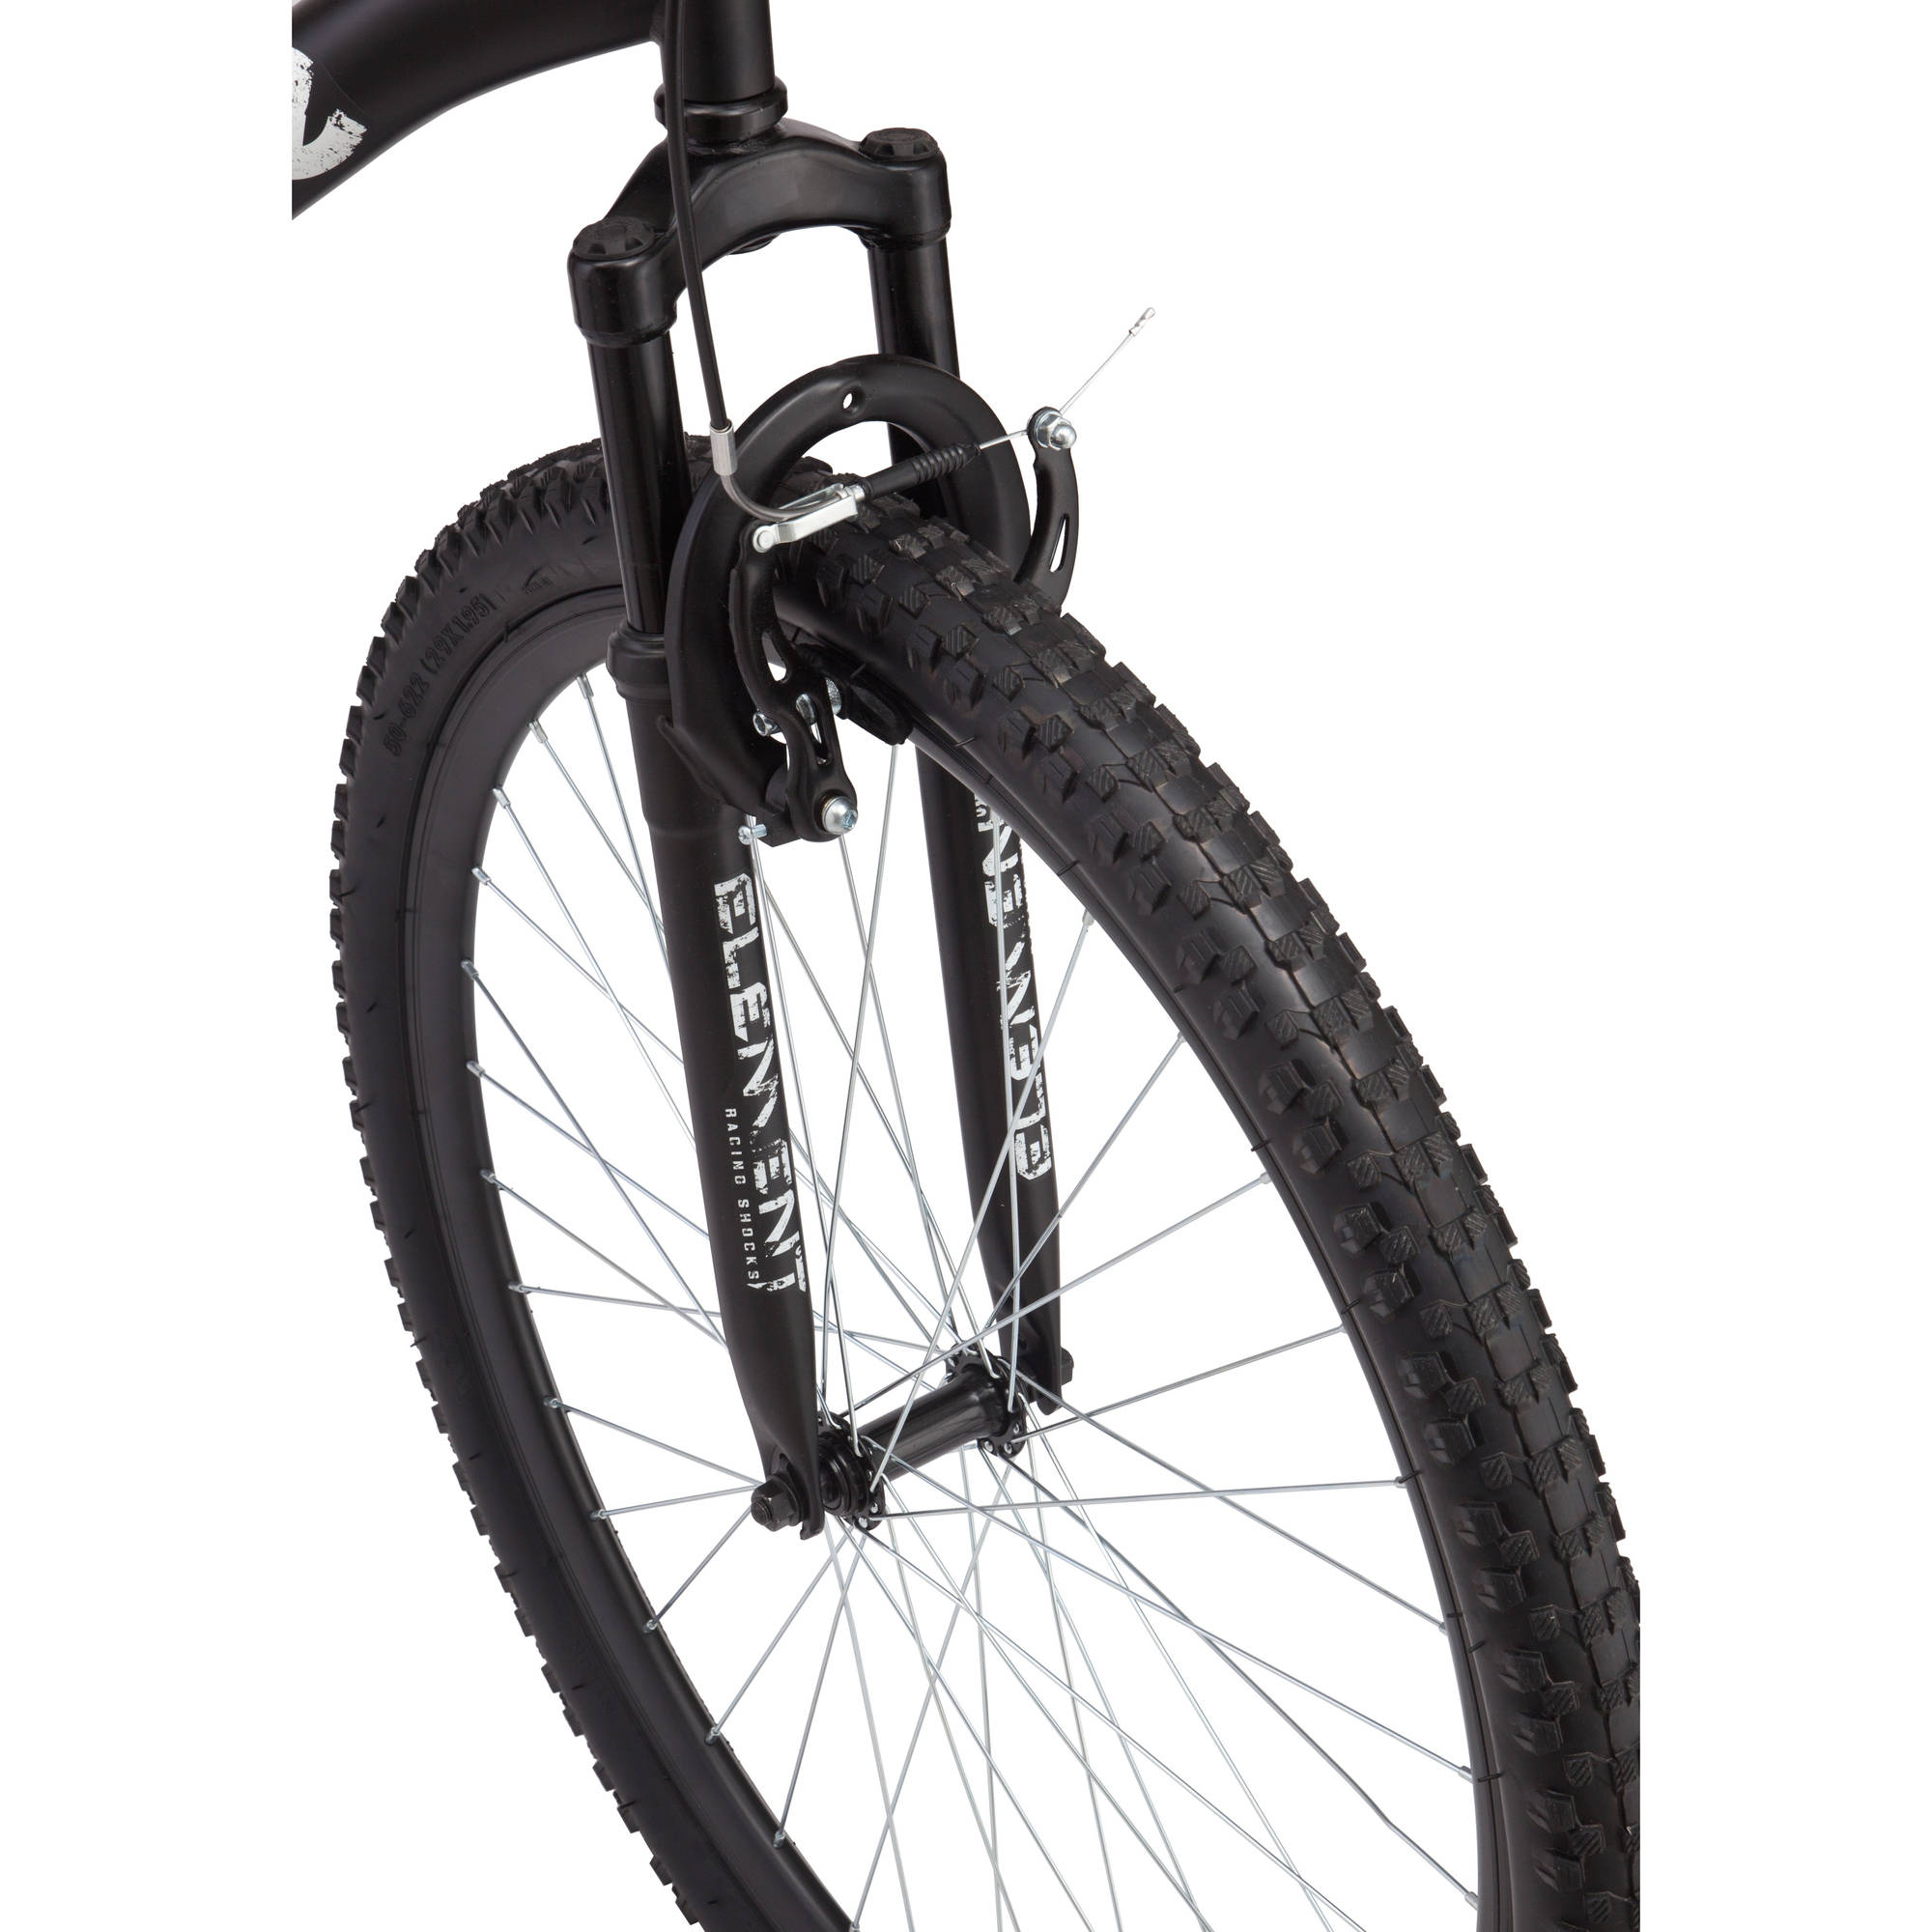 mongoose mountain bike prices - 800×800